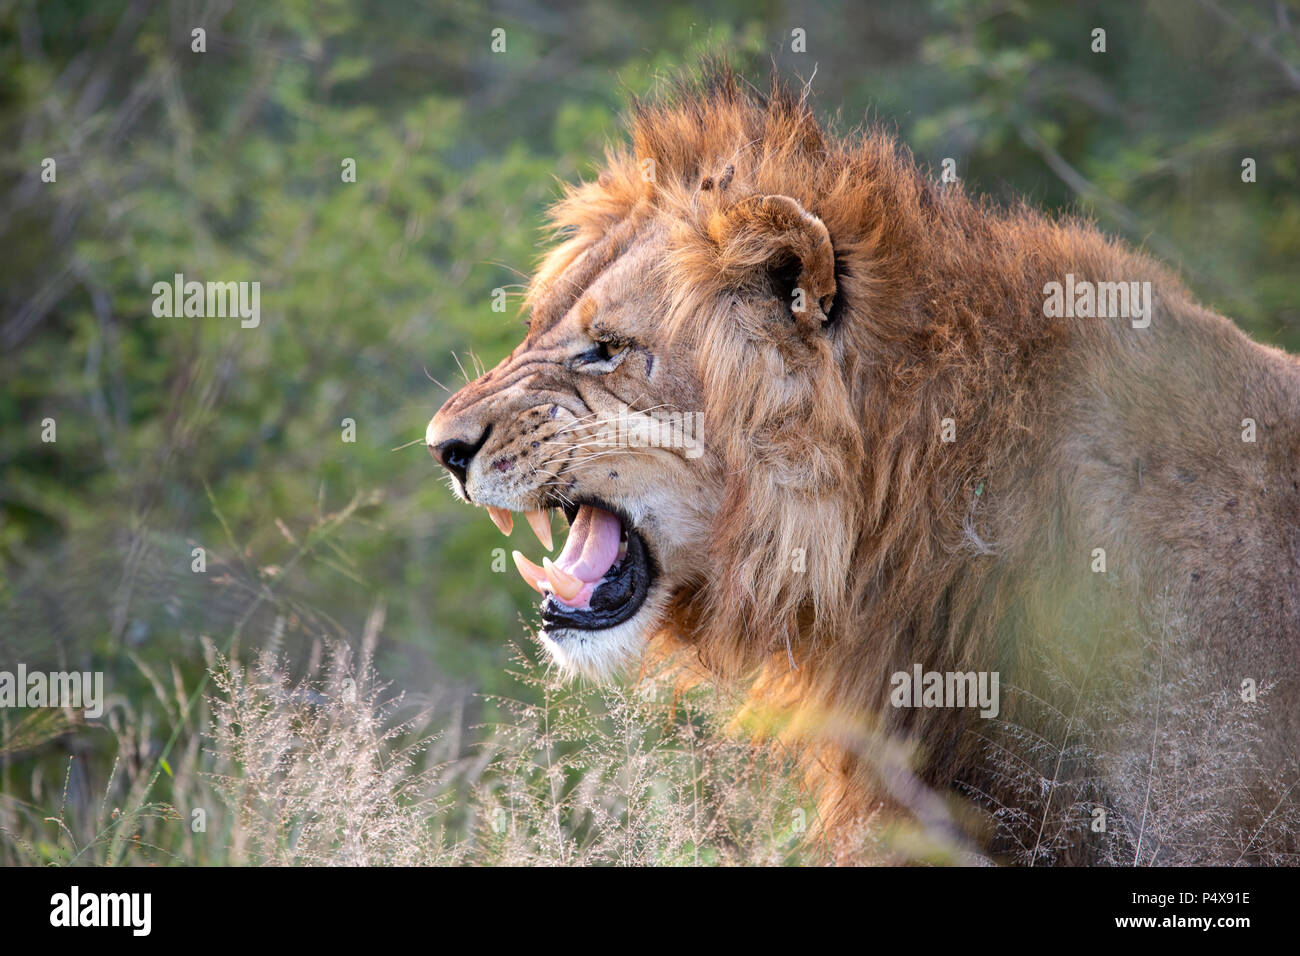 Close up headshot in profile of male lion Panthera leo snarling and baring teeth - Stock Image